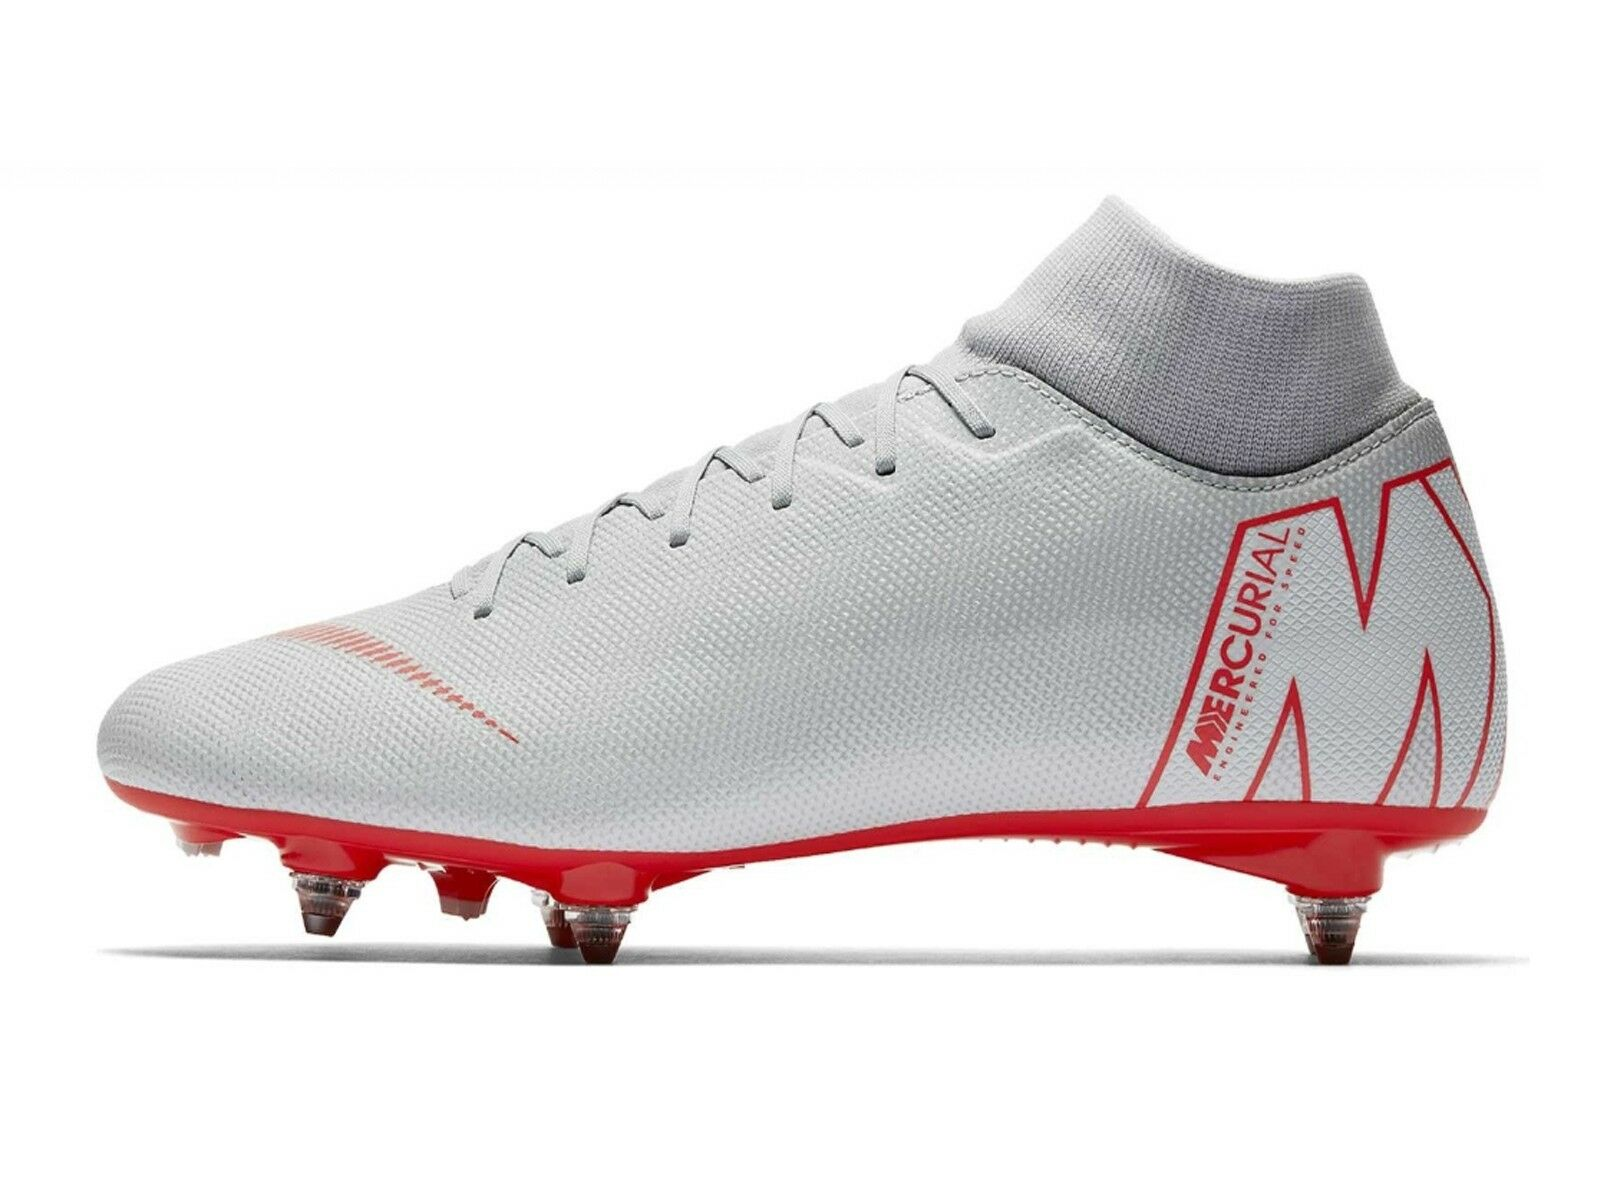 Zapatos CALCIO 6 TACCHETTI JUNIOR NIKE  AH7338 060  SUPERFLY 6 ACADEMY GS SGPRO J